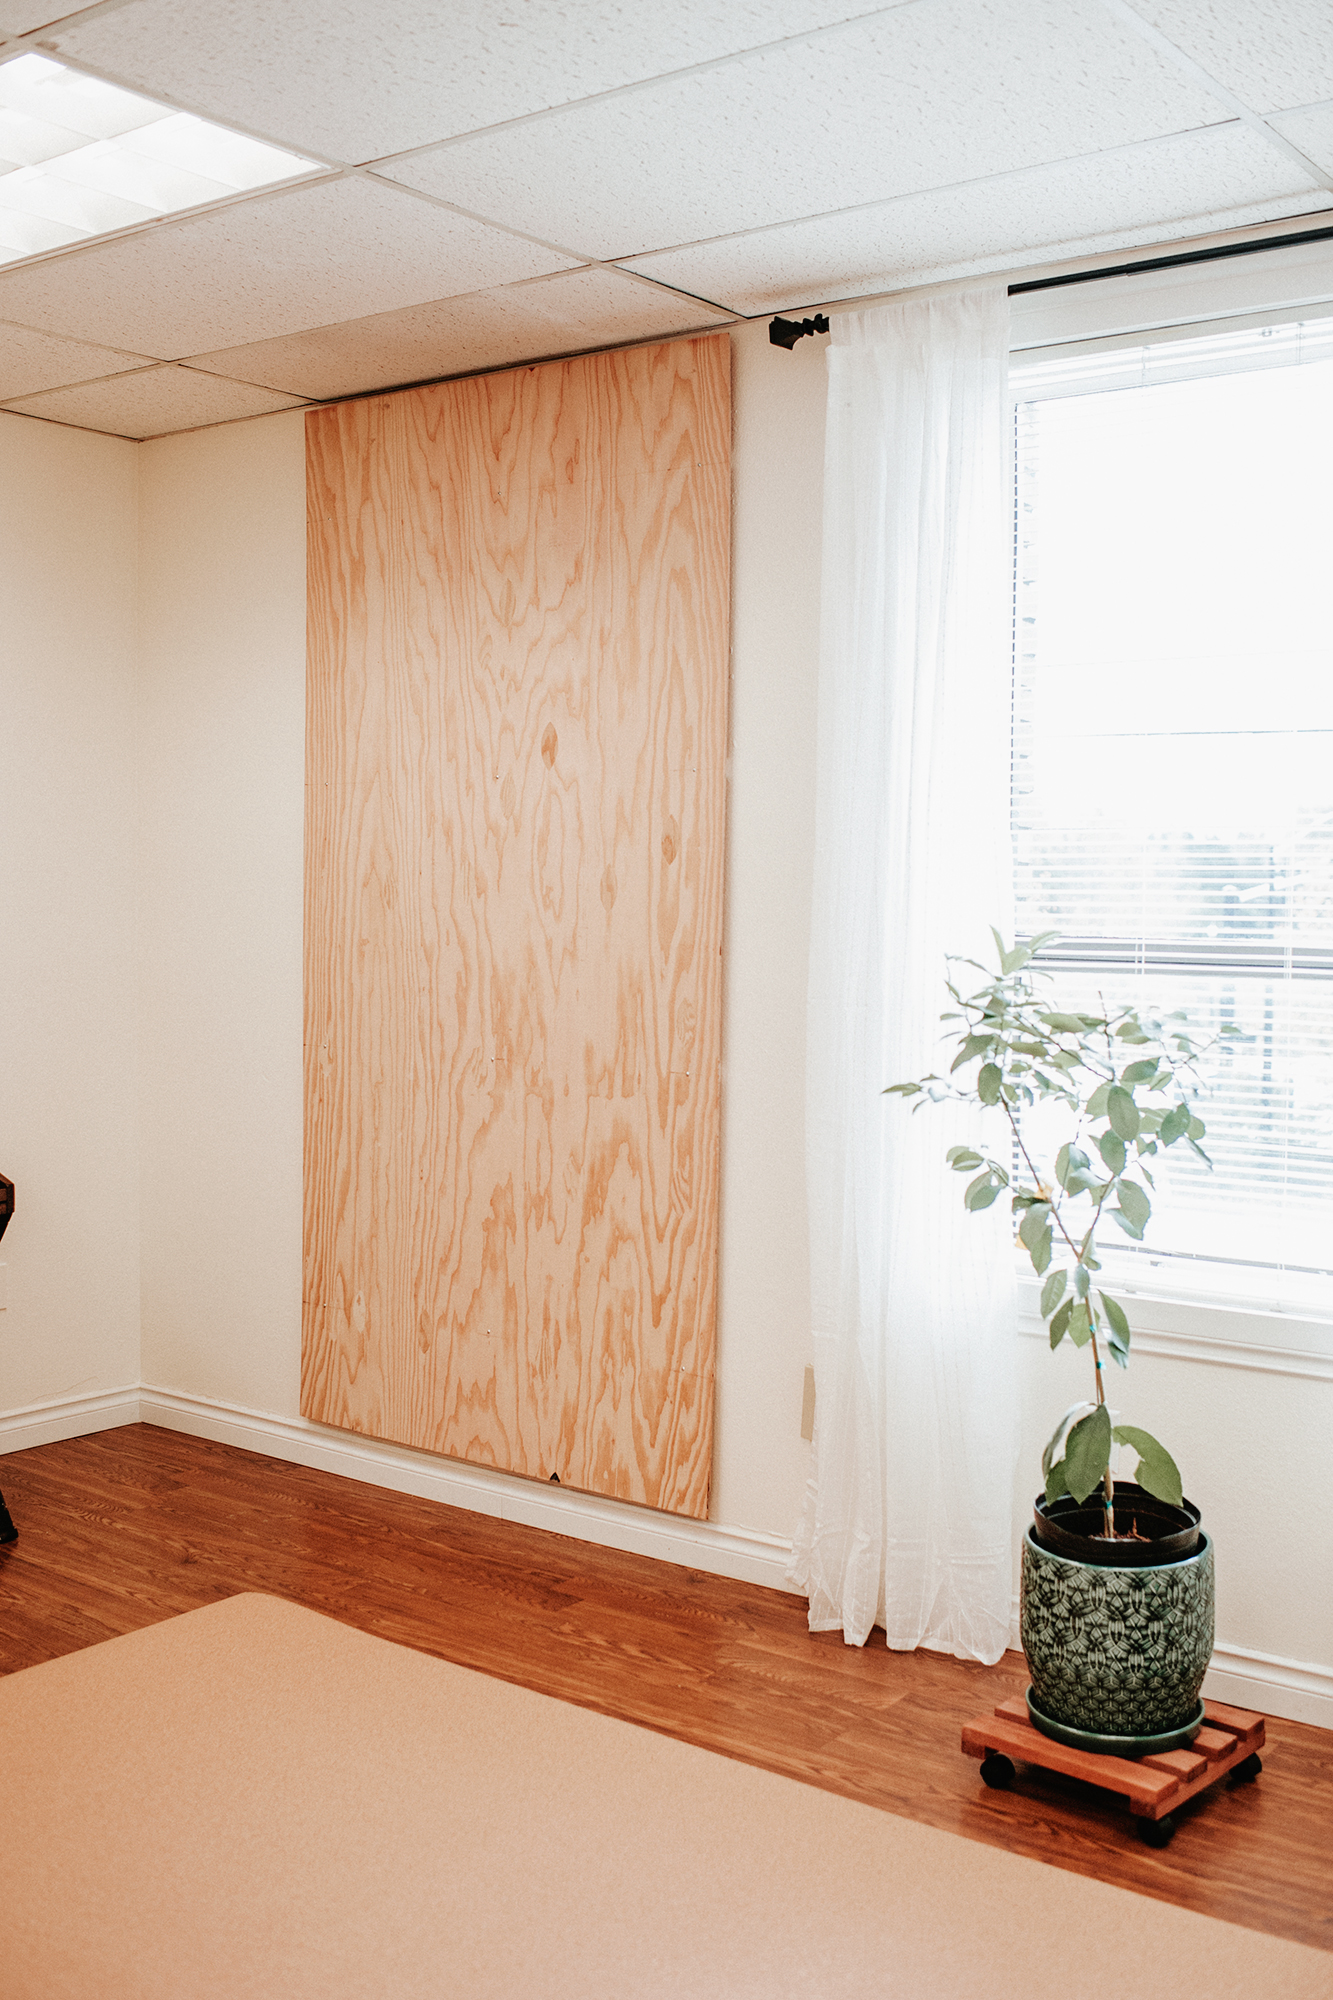 diy-cork-board-office-wall-plywood-mounted.jpg